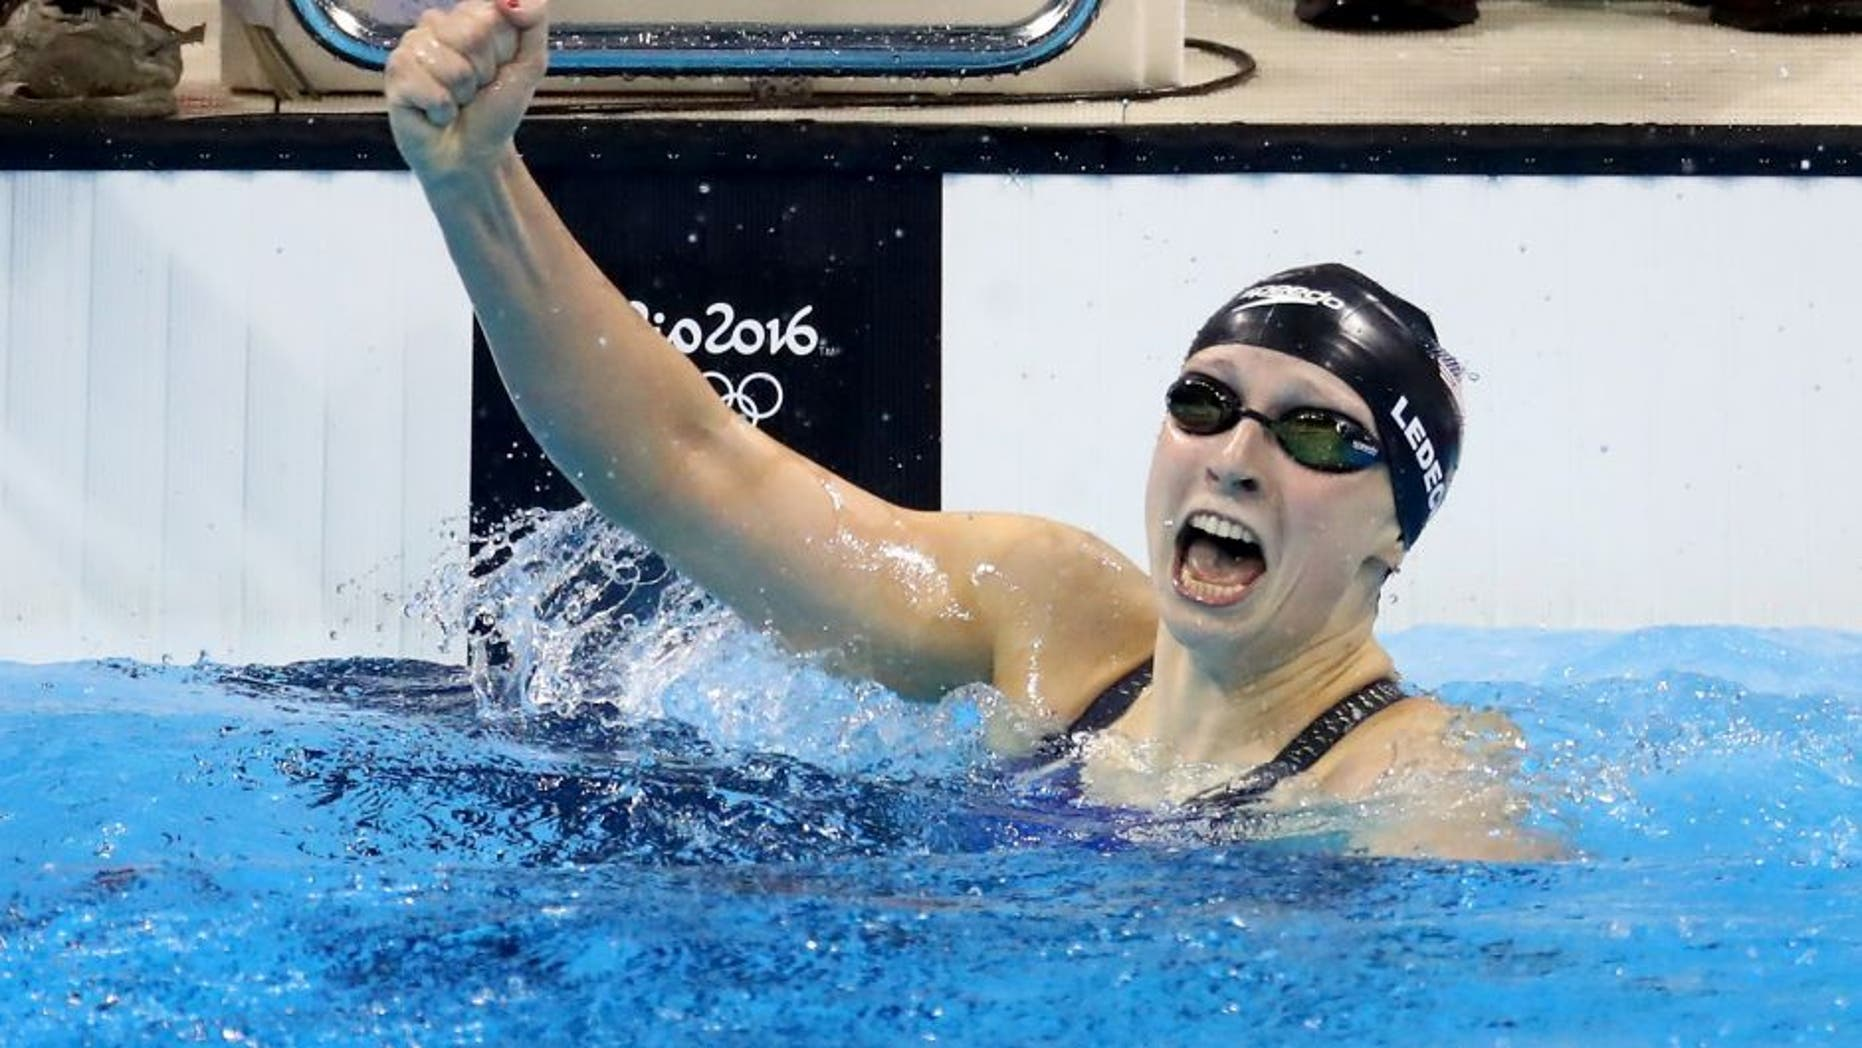 RIO DE JANEIRO, BRAZIL - AUGUST 07: Katie Ledecky of the United States celebrates winning gold and setting a new world record in the Women's 400m Freestyle Final on Day 2 of the Rio 2016 Olympic Games at the Olympic Aquatics Stadium on August 7, 2016 in Rio de Janeiro, Brazil. (Photo by Ryan Pierse/Getty Images)